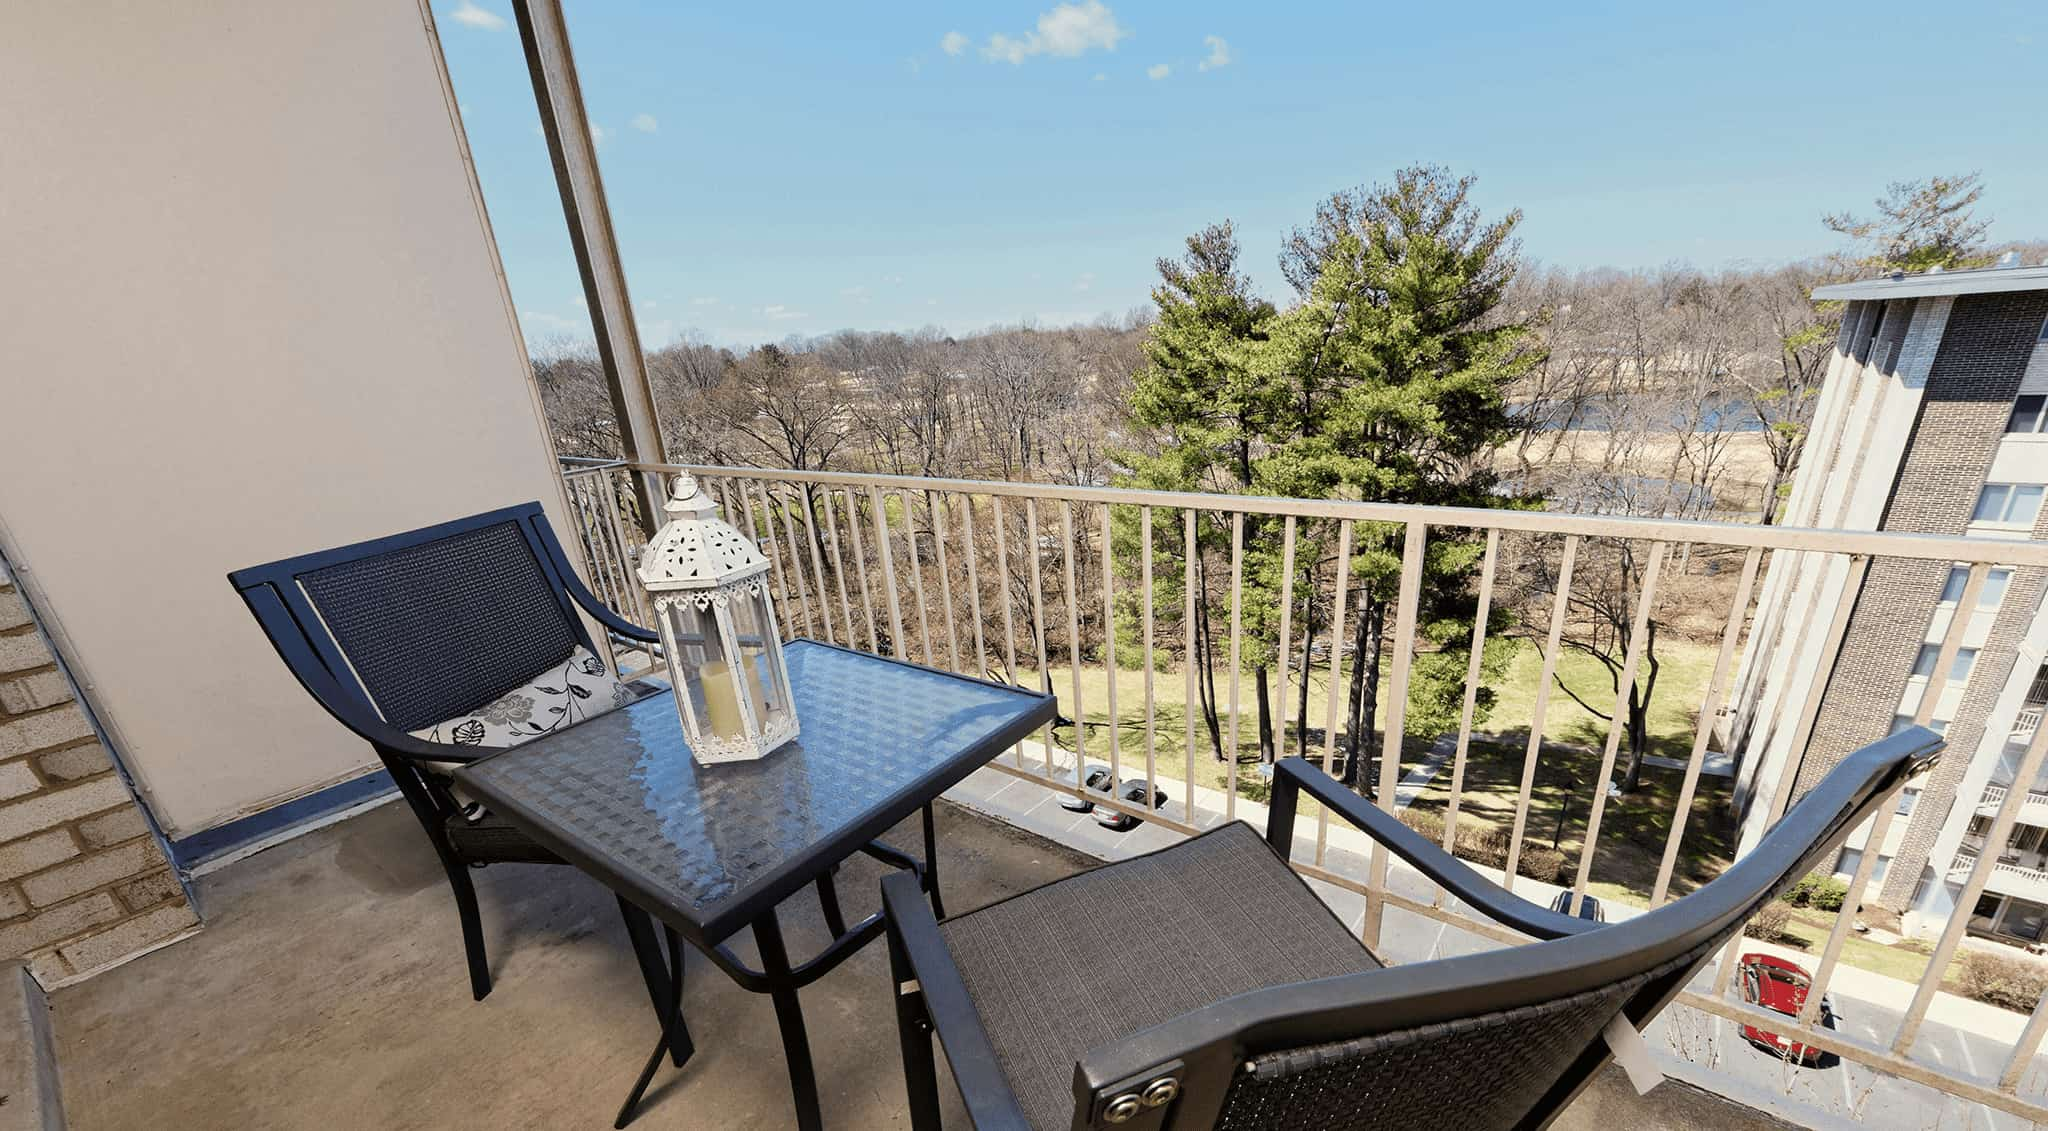 A table and two chairs sitting on a Congressional Towers Apartments balcony